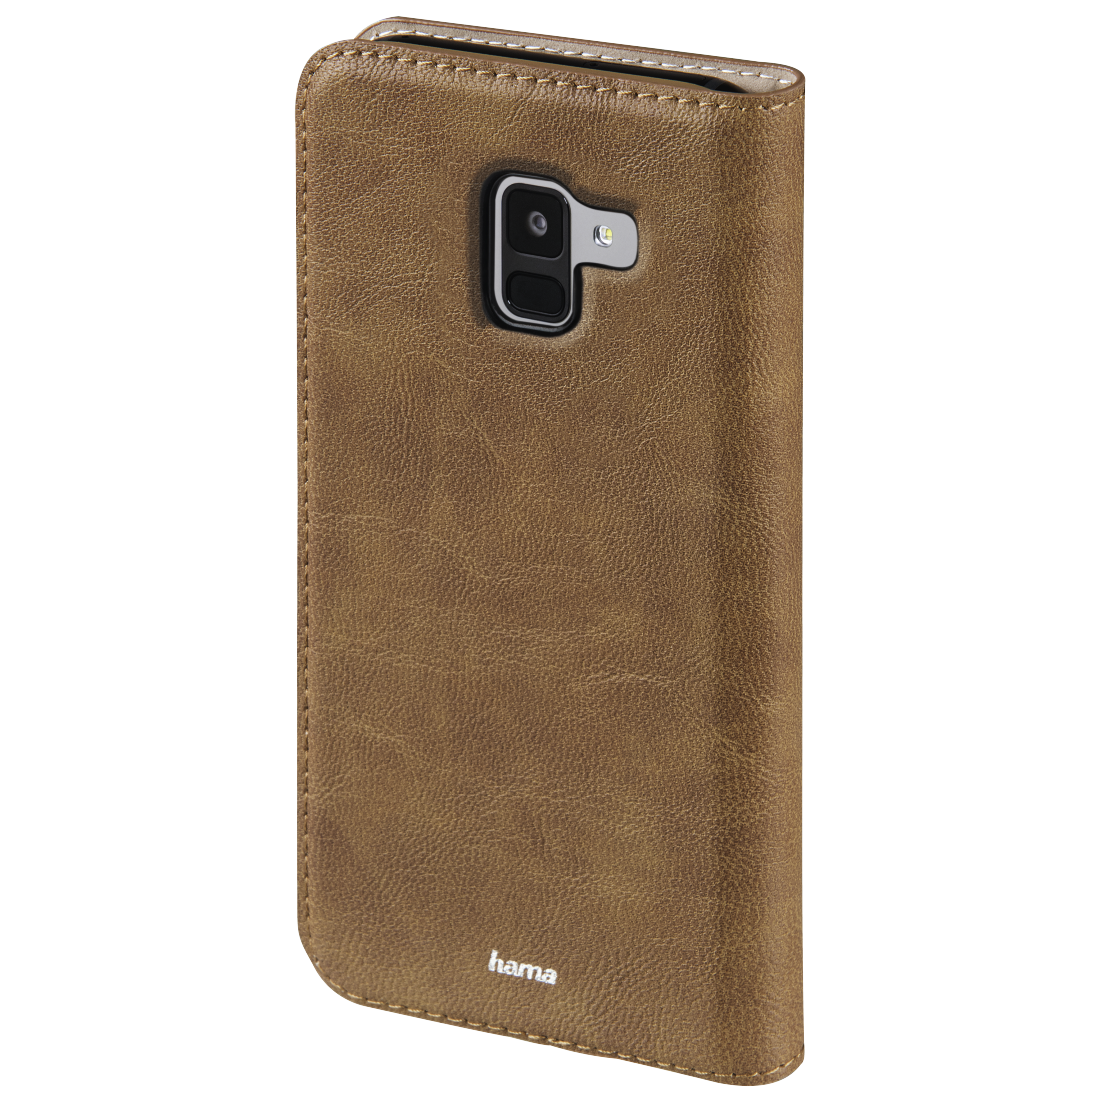 abx2 High-Res Image 2 - Hama, Guard Case Booklet for Samsung Galaxy A8 (2018), brown